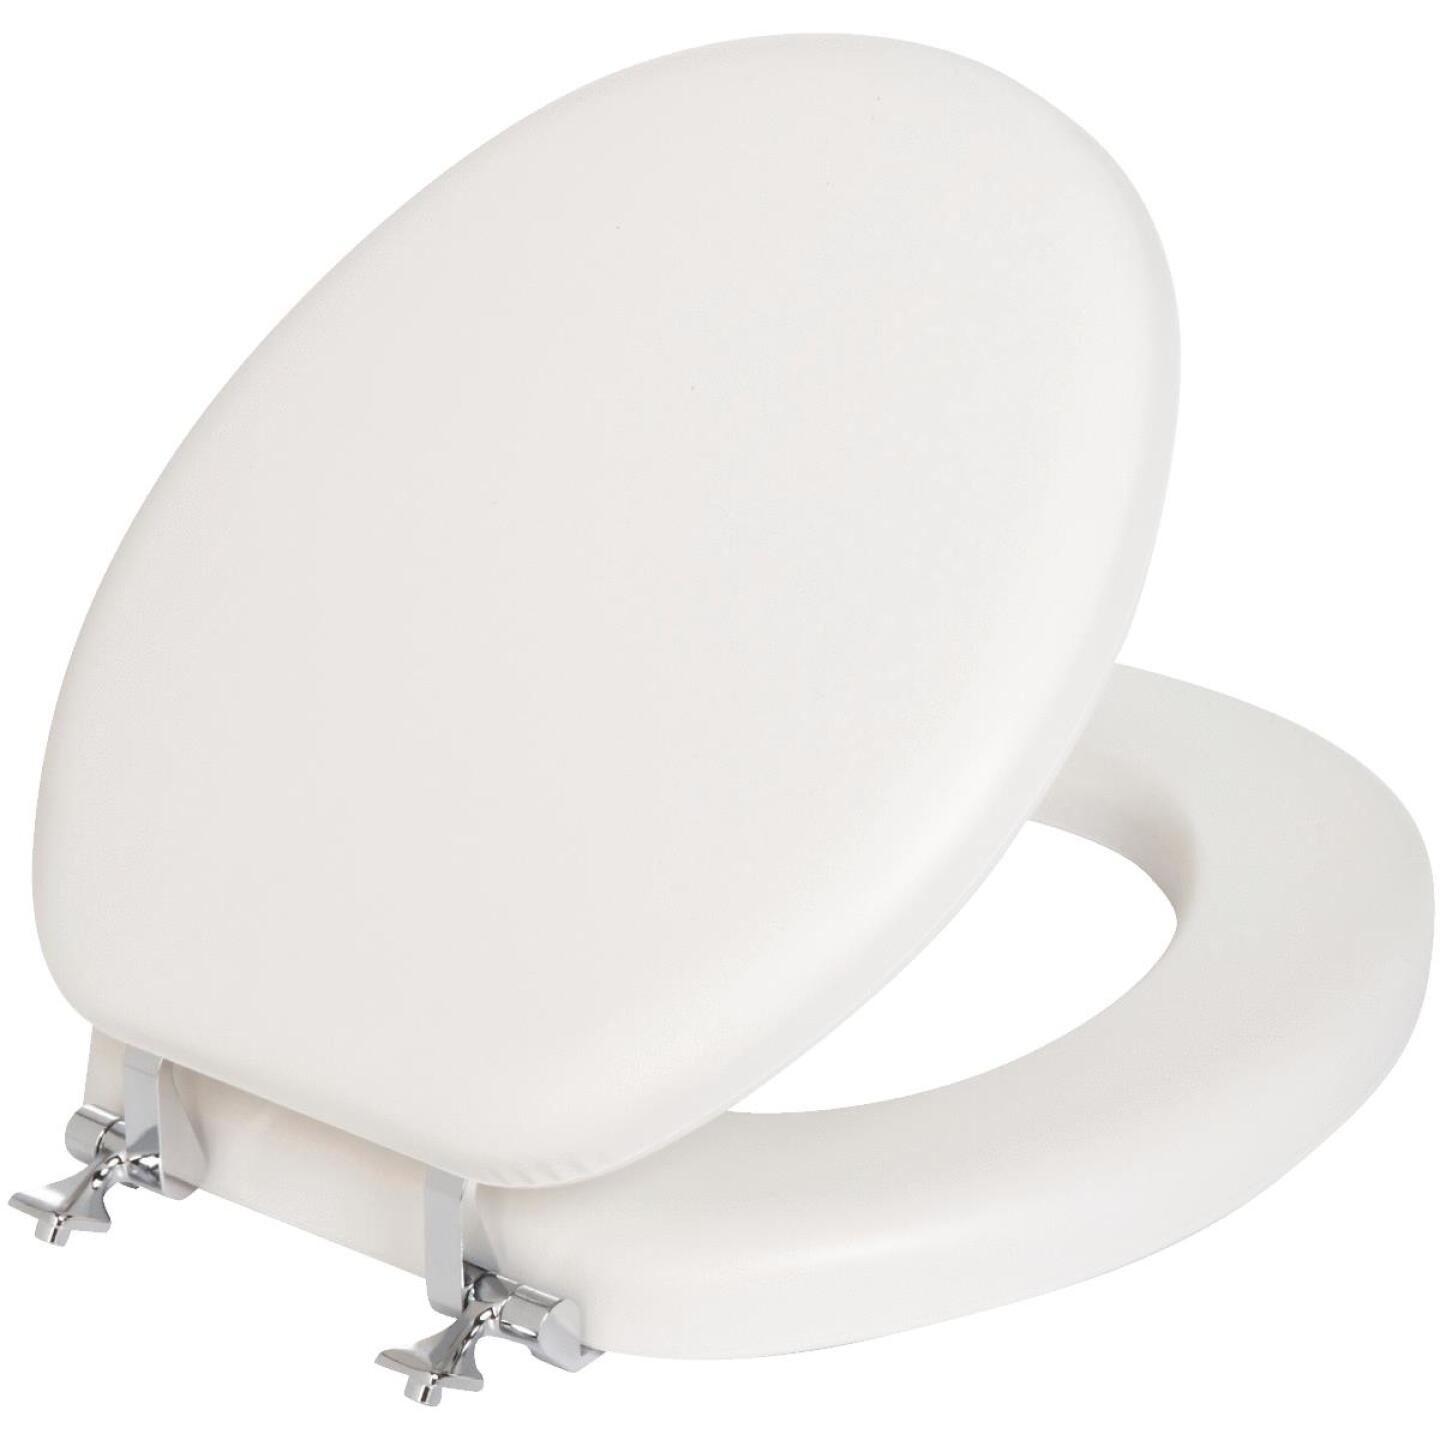 Mayfair Round Closed Front Premium Soft Toilet Seat with Chrome Hinges Image 1